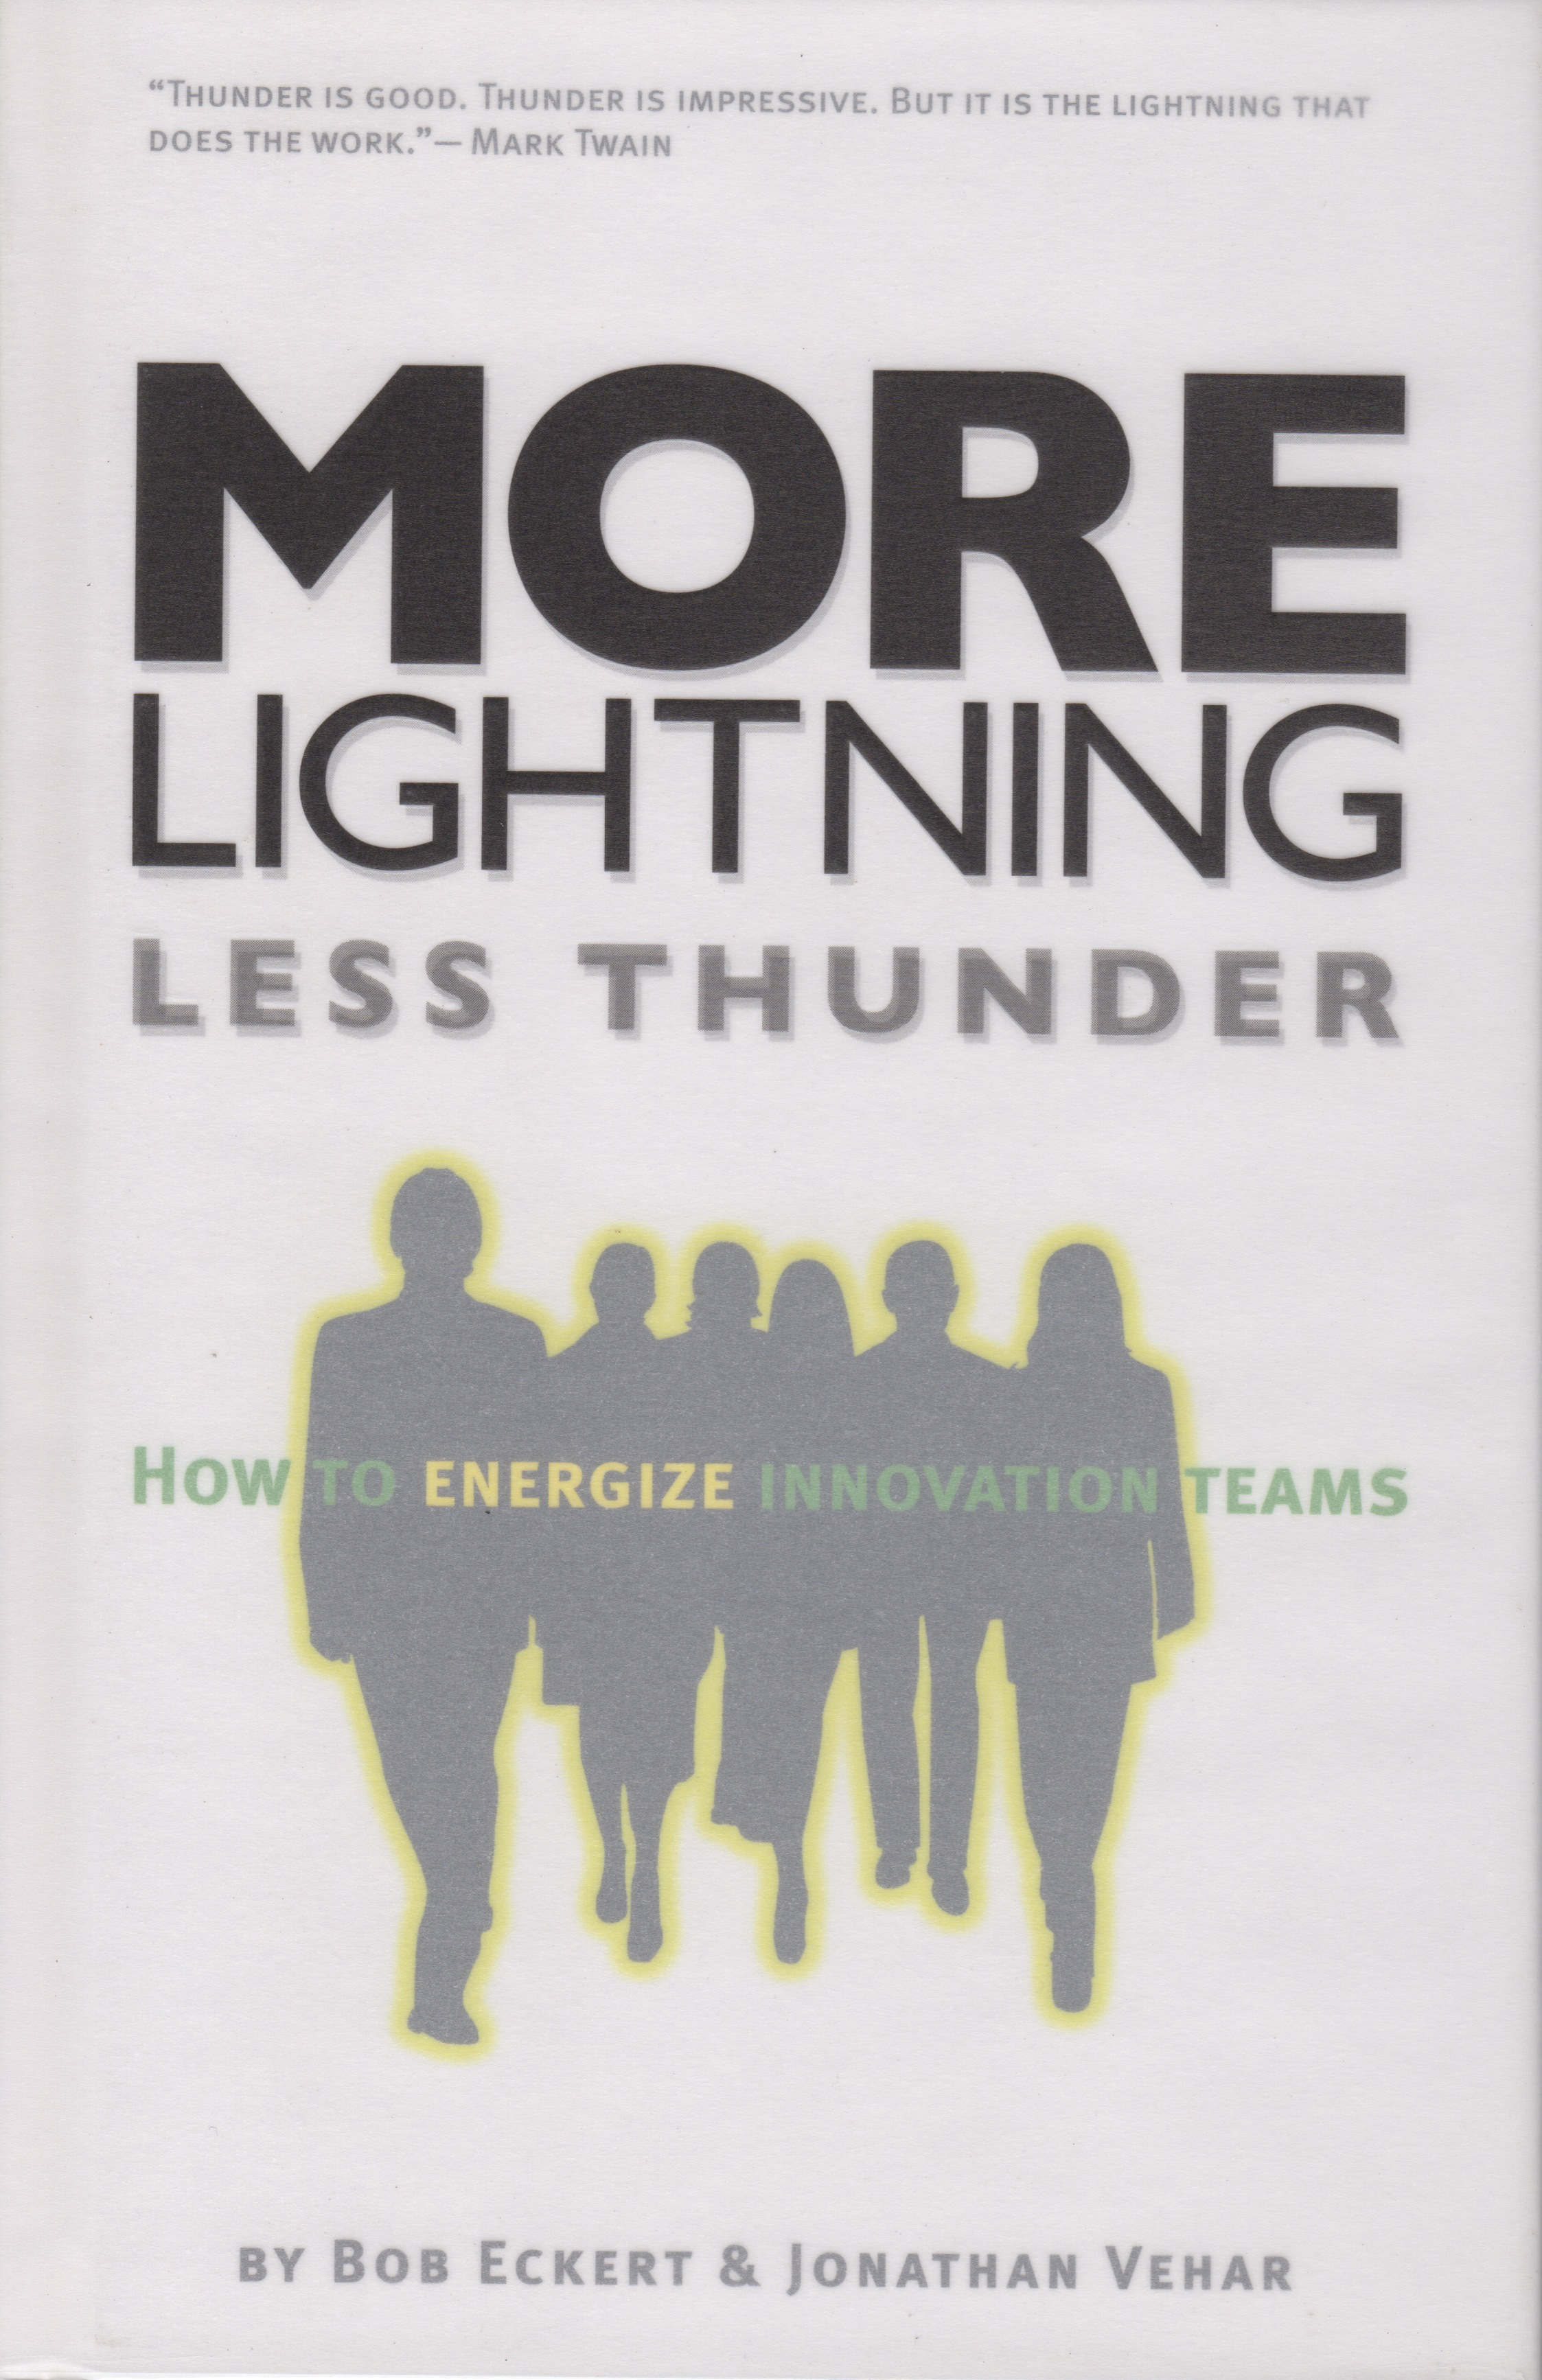 More Lightning Less Thunder: How to Energize Innovation Teams, by Bob Eckert & Jonathan Vehar, Hard Cover